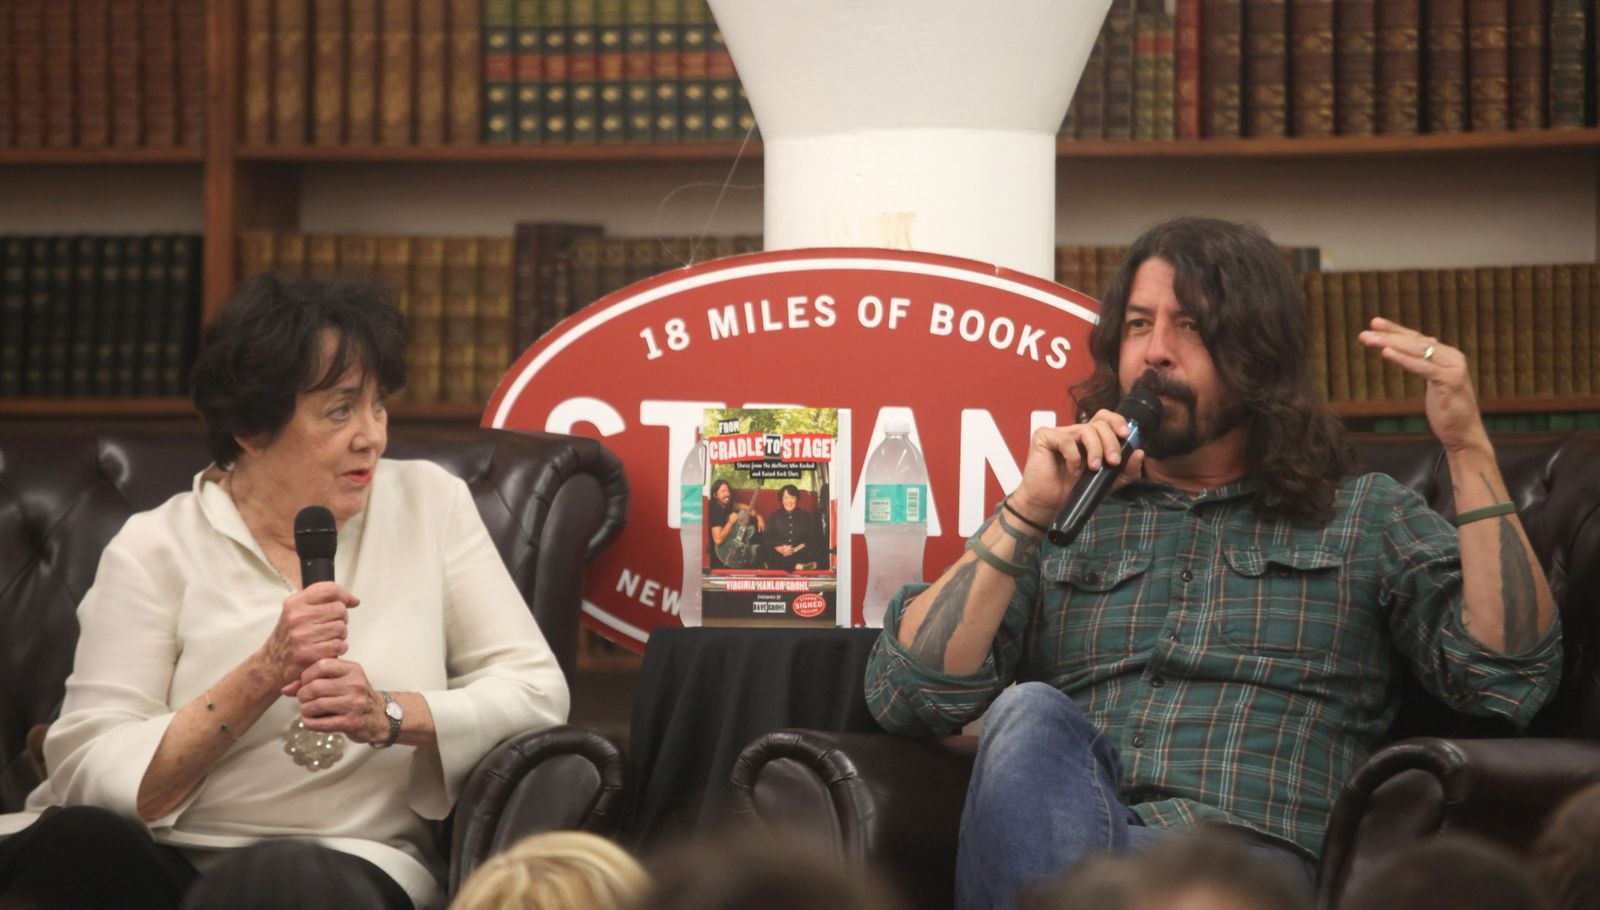 Virginia & Dave Grohl In Conversation